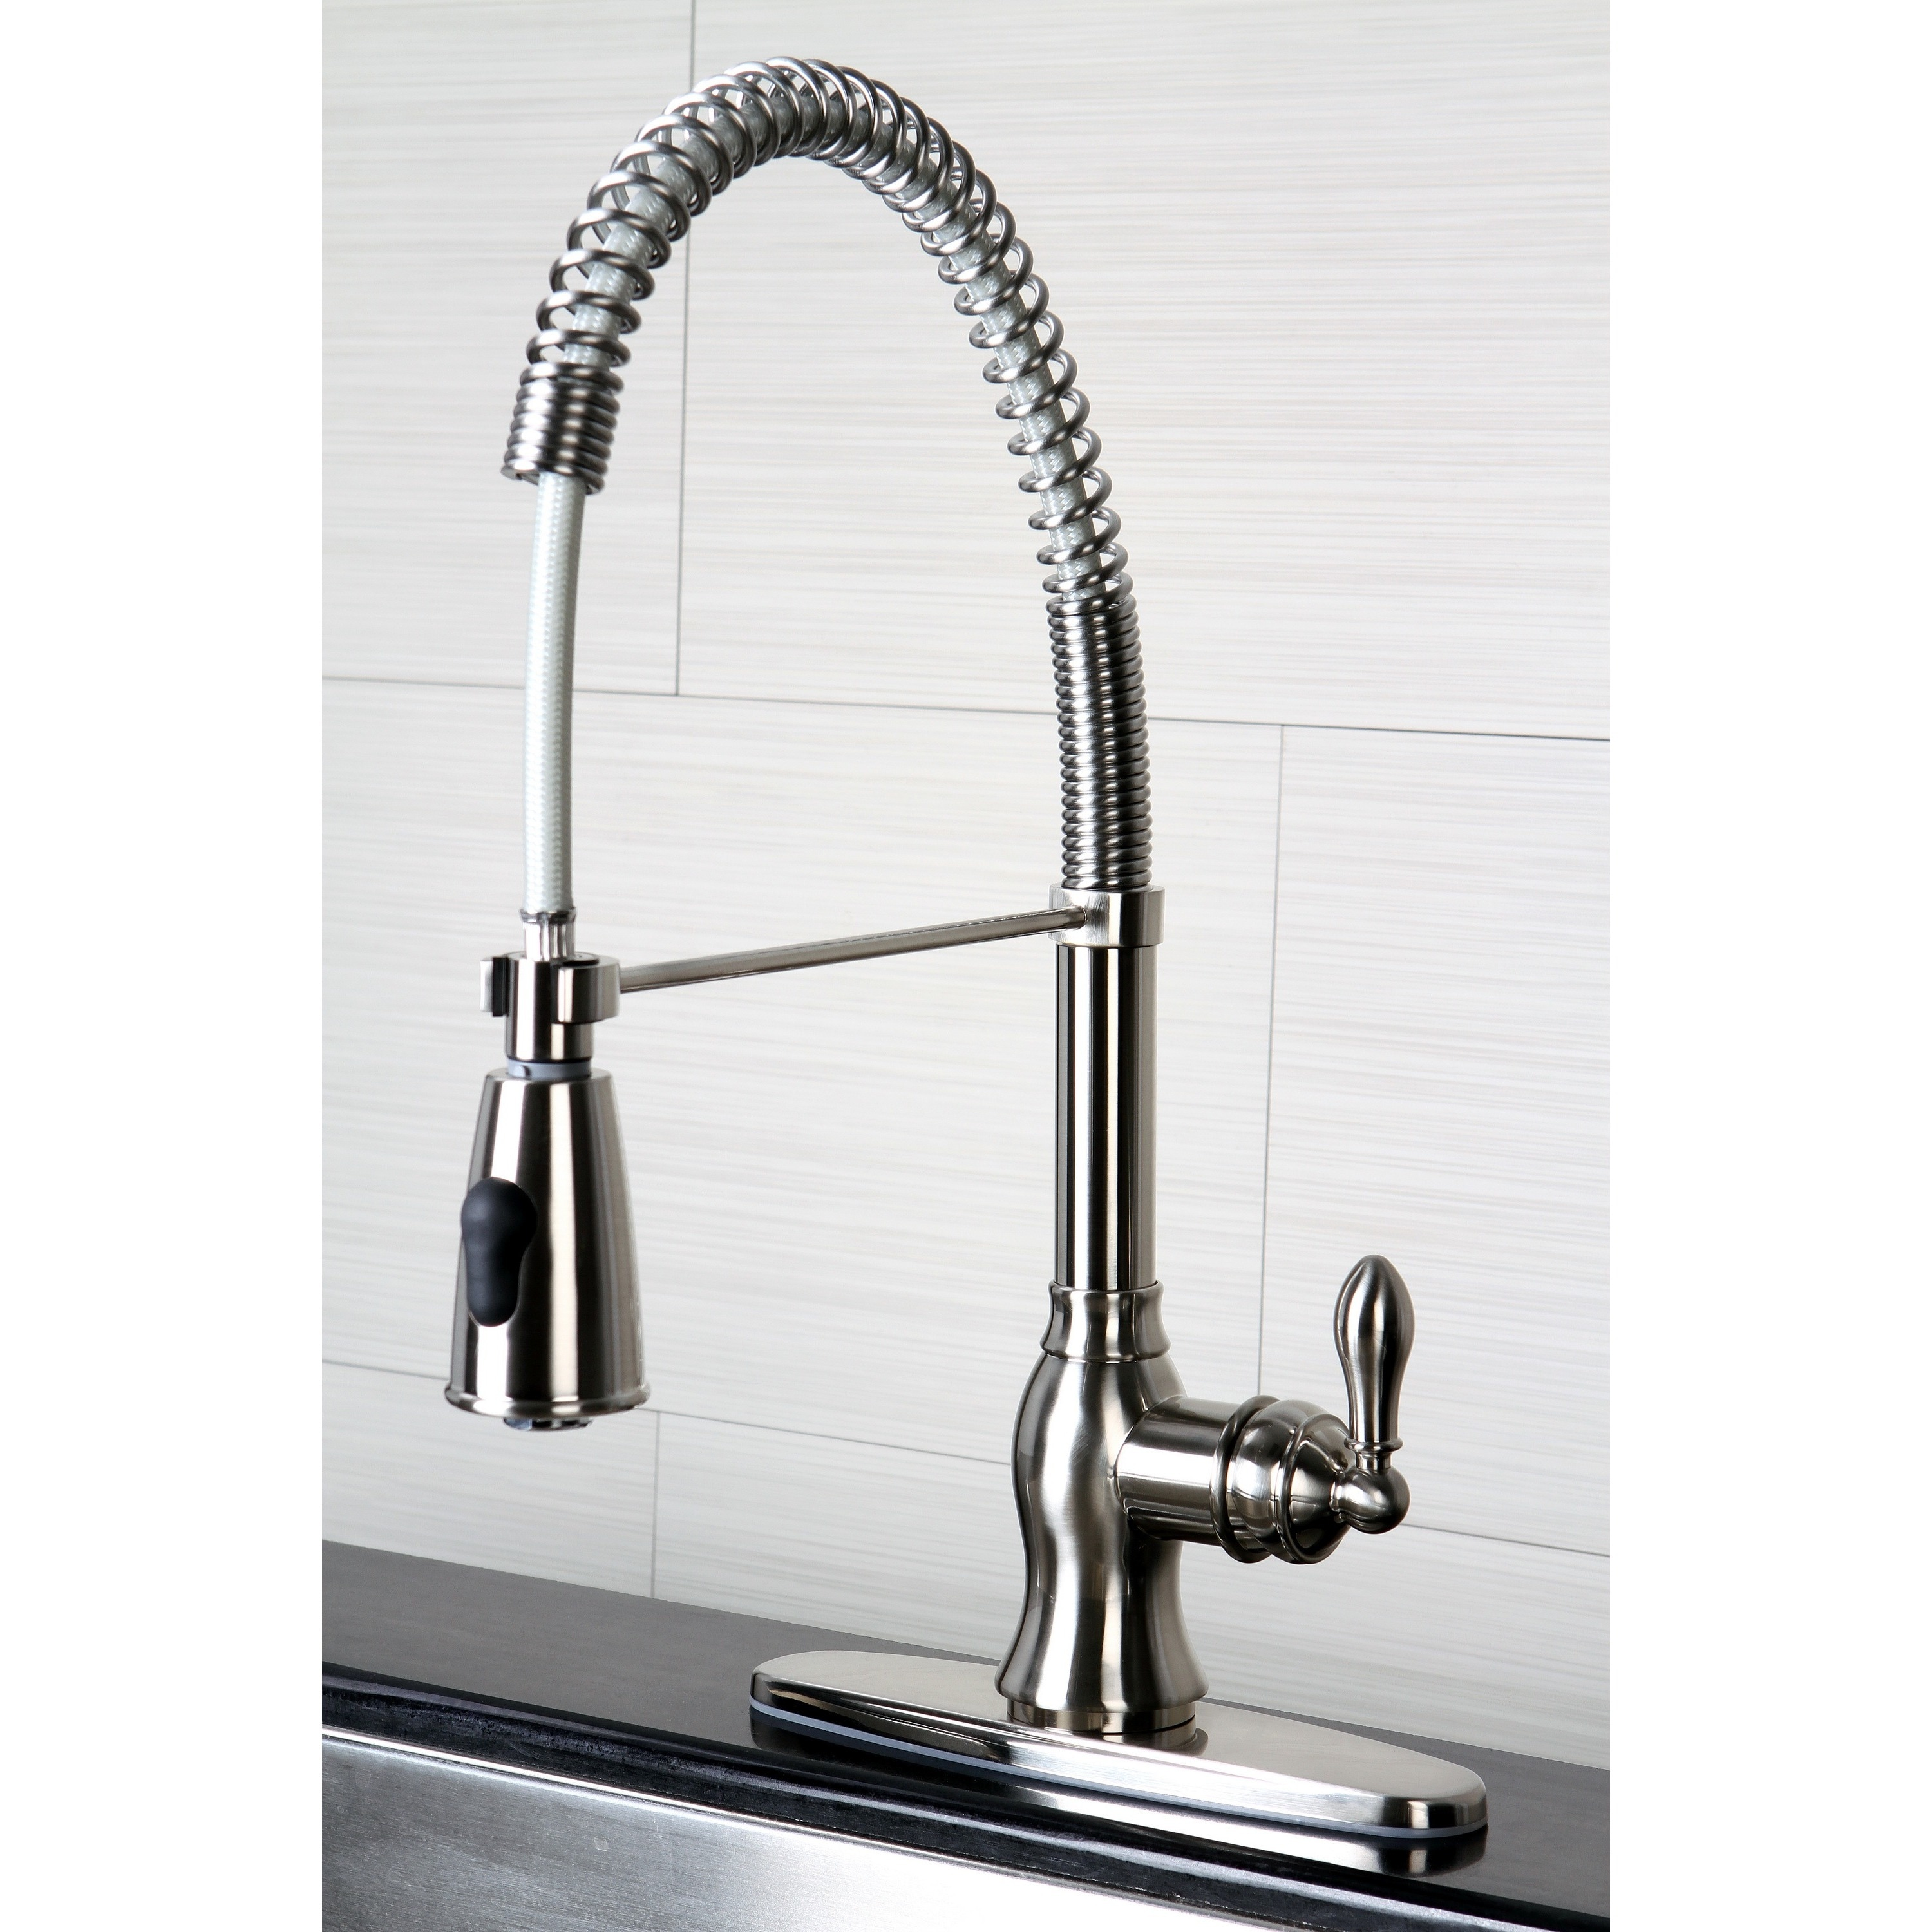 Contemporary Kitchen Faucets: American Classic Modern Satin Nickel Spiral Pull-down